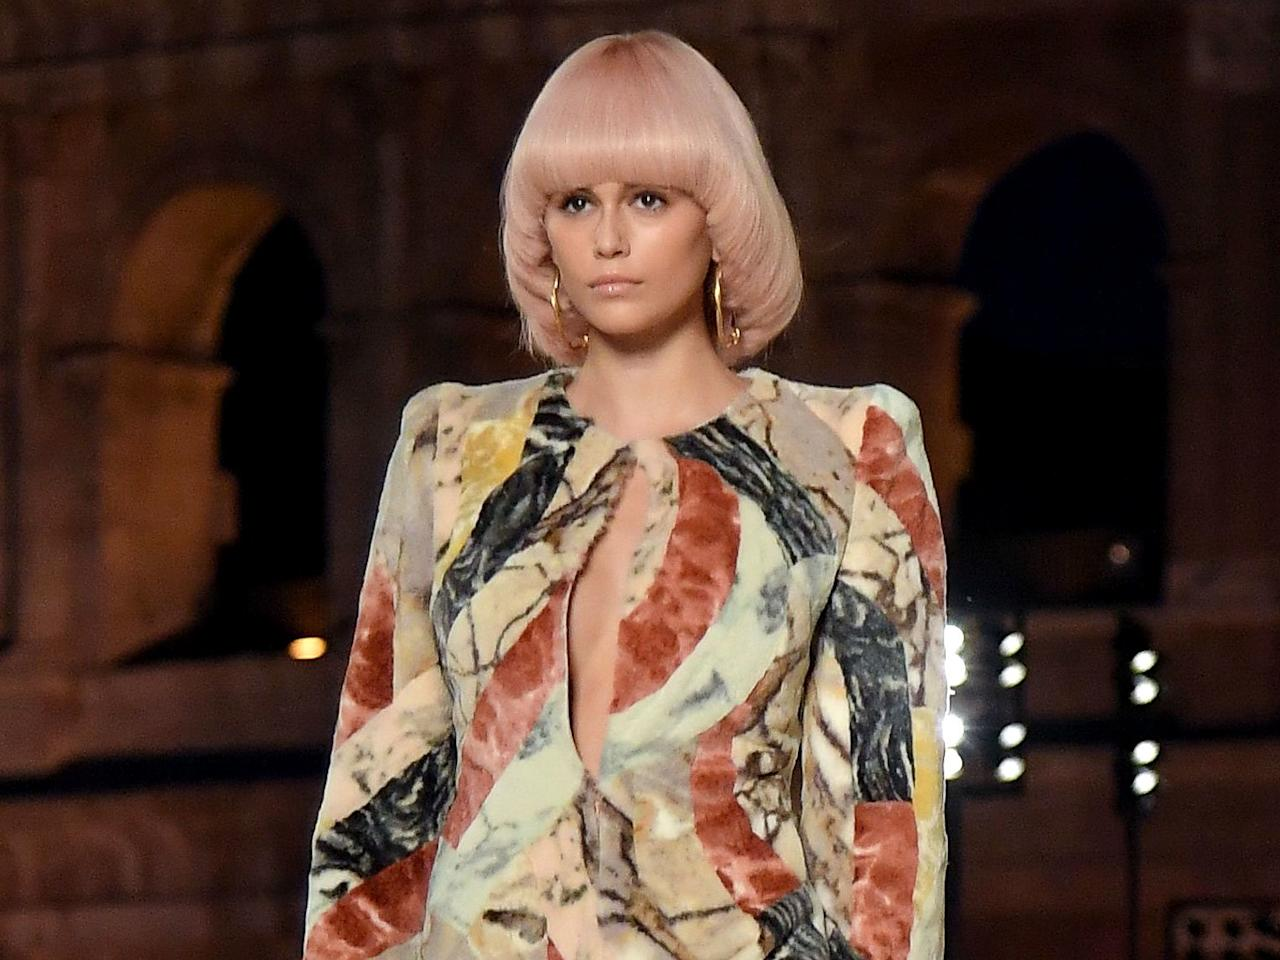 """<p>The model wore a pastel bowl cut bob wig on the Fendi Haute Couture Fall 2019 runway in Rome. """"The look was inspired by the geometric bobs of the late '60s and '70s that Karl [Lagerfeld, the late designer of Fendi] featured in his illustrations at that time,"""" said hairstylist Sam McKnight in the September 2019 issue of <em>InStyle</em>. """"I cut many variations, and this round shape is so attering; it opens up the face."""" He set the very chic bobs with a mist of <a href=""""https://click.linksynergy.com/deeplink?id=93xLBvPhAeE&mid=24449&murl=https%3A%2F%2Fwww.net-a-porter.com%2Fus%2Fen%2Fproduct%2F998865%2FHAIR_BY_SAM_McKNIGHT_%2Fmodern-hairspray-250ml&u1=IS%2CBowlCuts-Embed-2%2Ckchiello1271%2C%2CIMA%2C3476219%2C201909%2CI"""" target=""""_blank"""">hairspray</a> from his eponymous haircare line. </p>"""